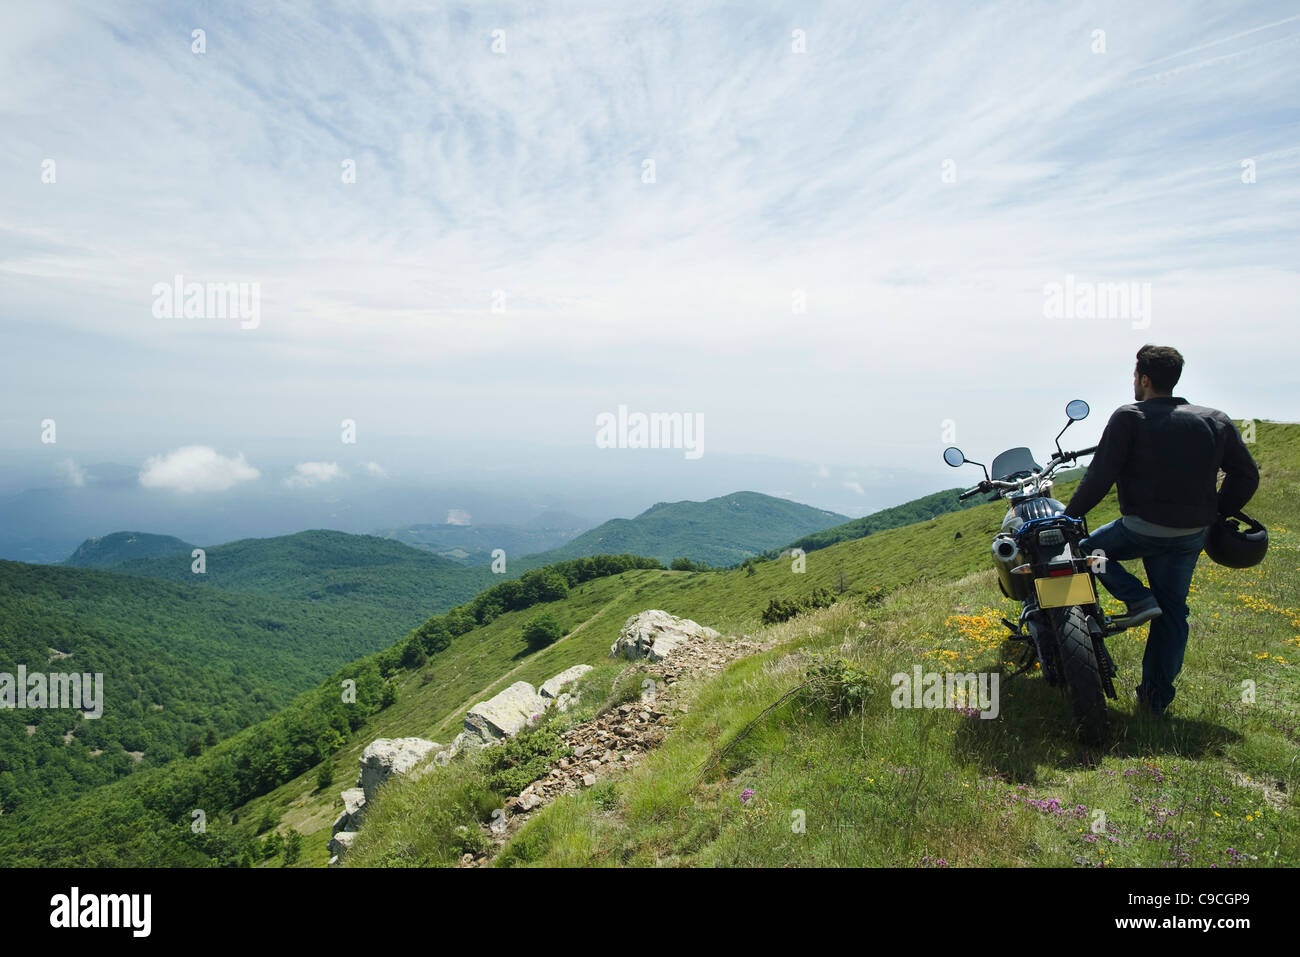 Man standing by motorcycle on top of mountain, rear view - Stock Image